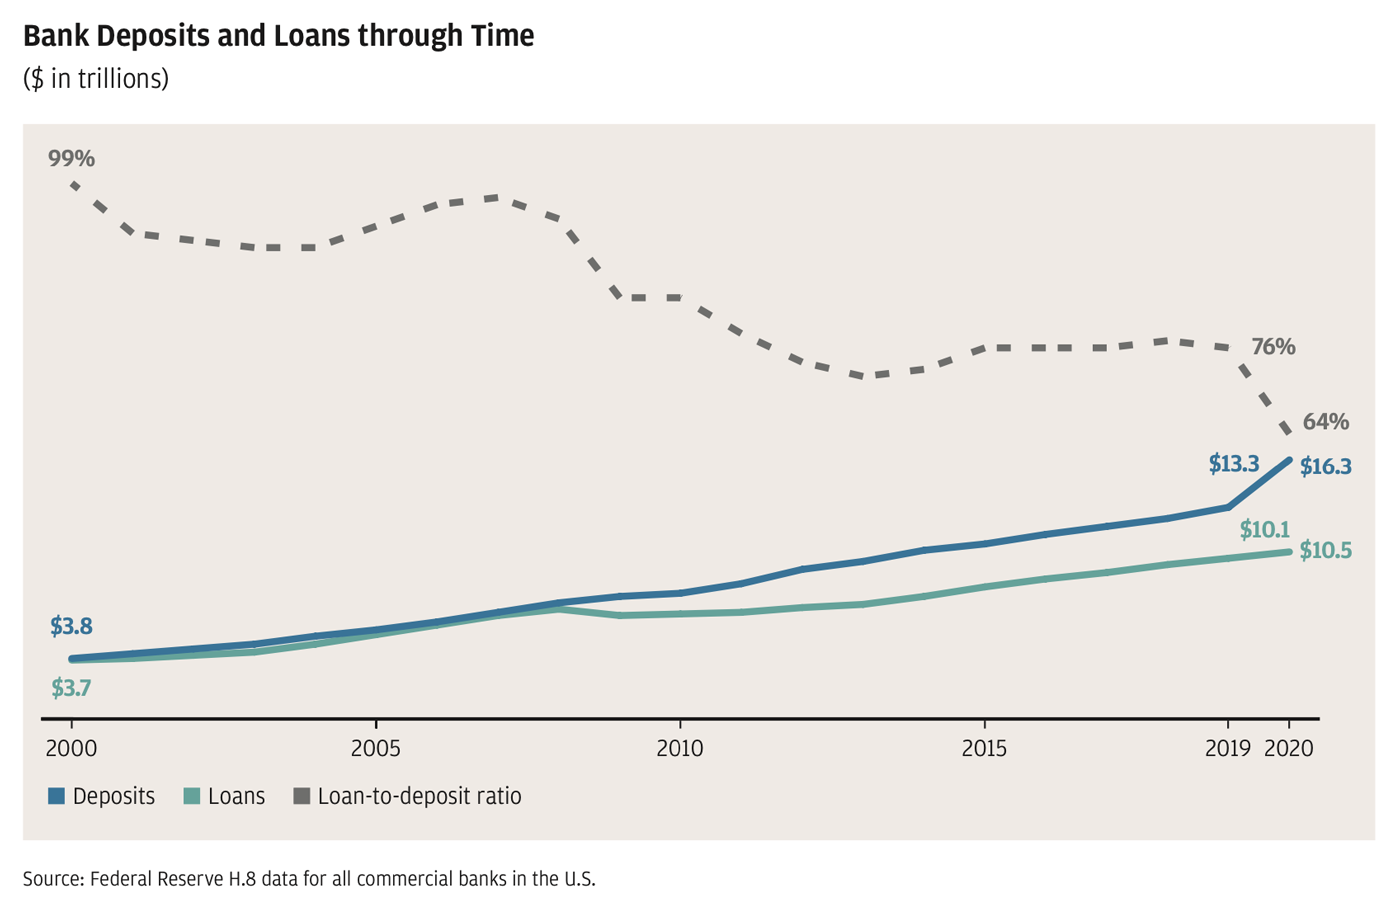 Line graph showing 2000 to 2020 trends for bank deposits, loans and loan-to-deposit ratio